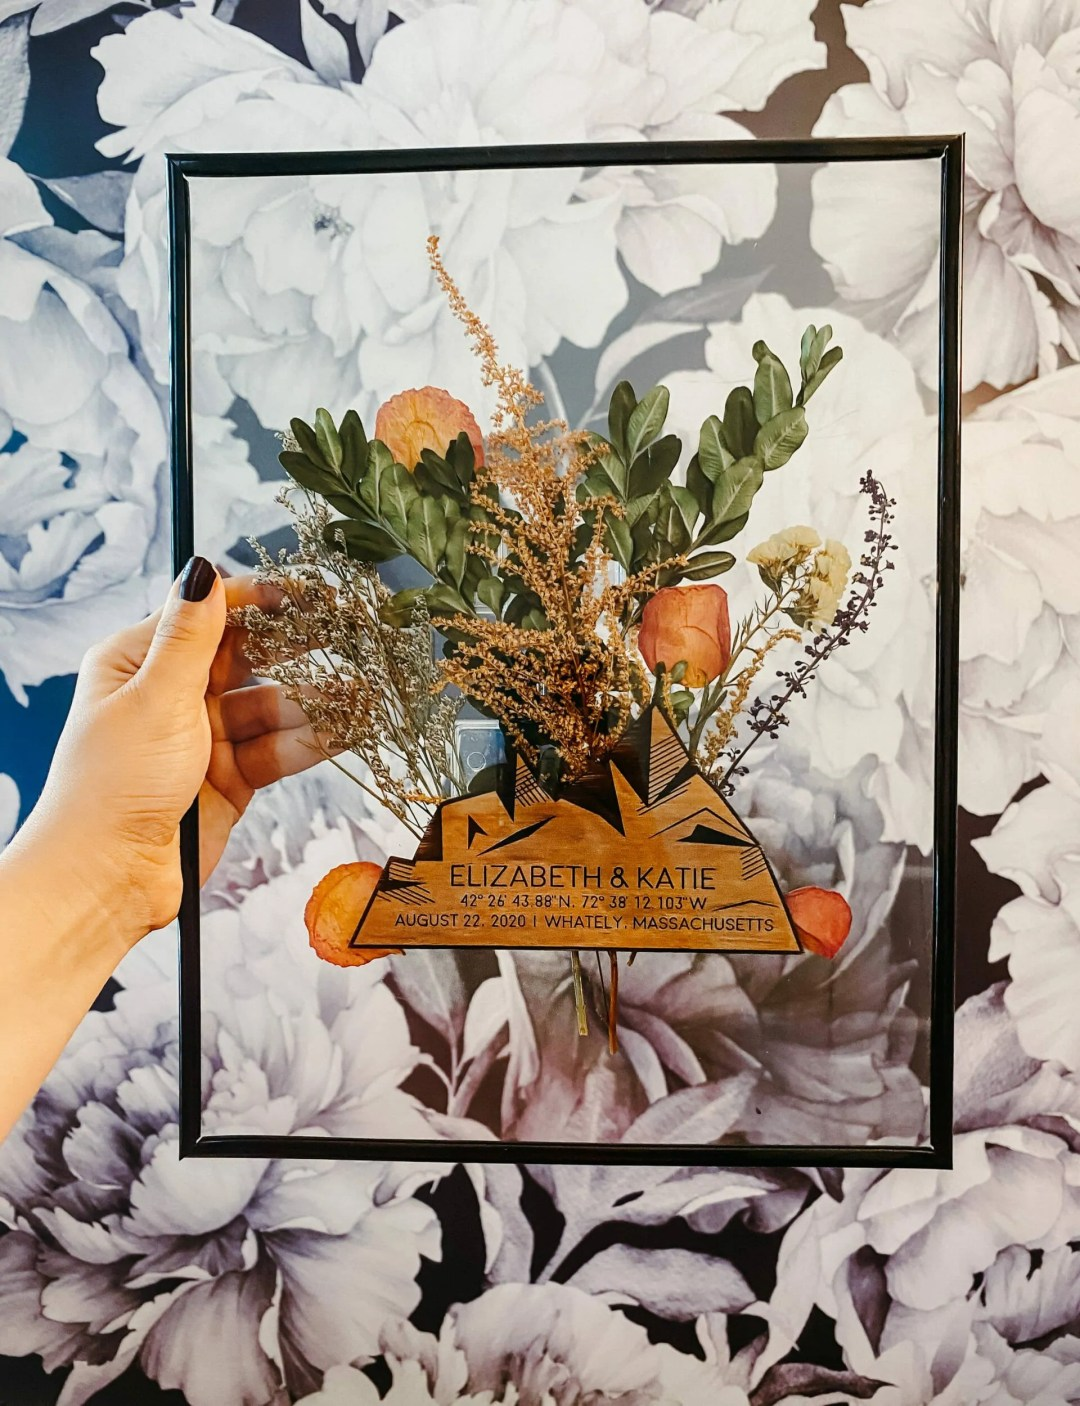 completed floating frame features wood wedding engraving and a bouquet of pressed flowers